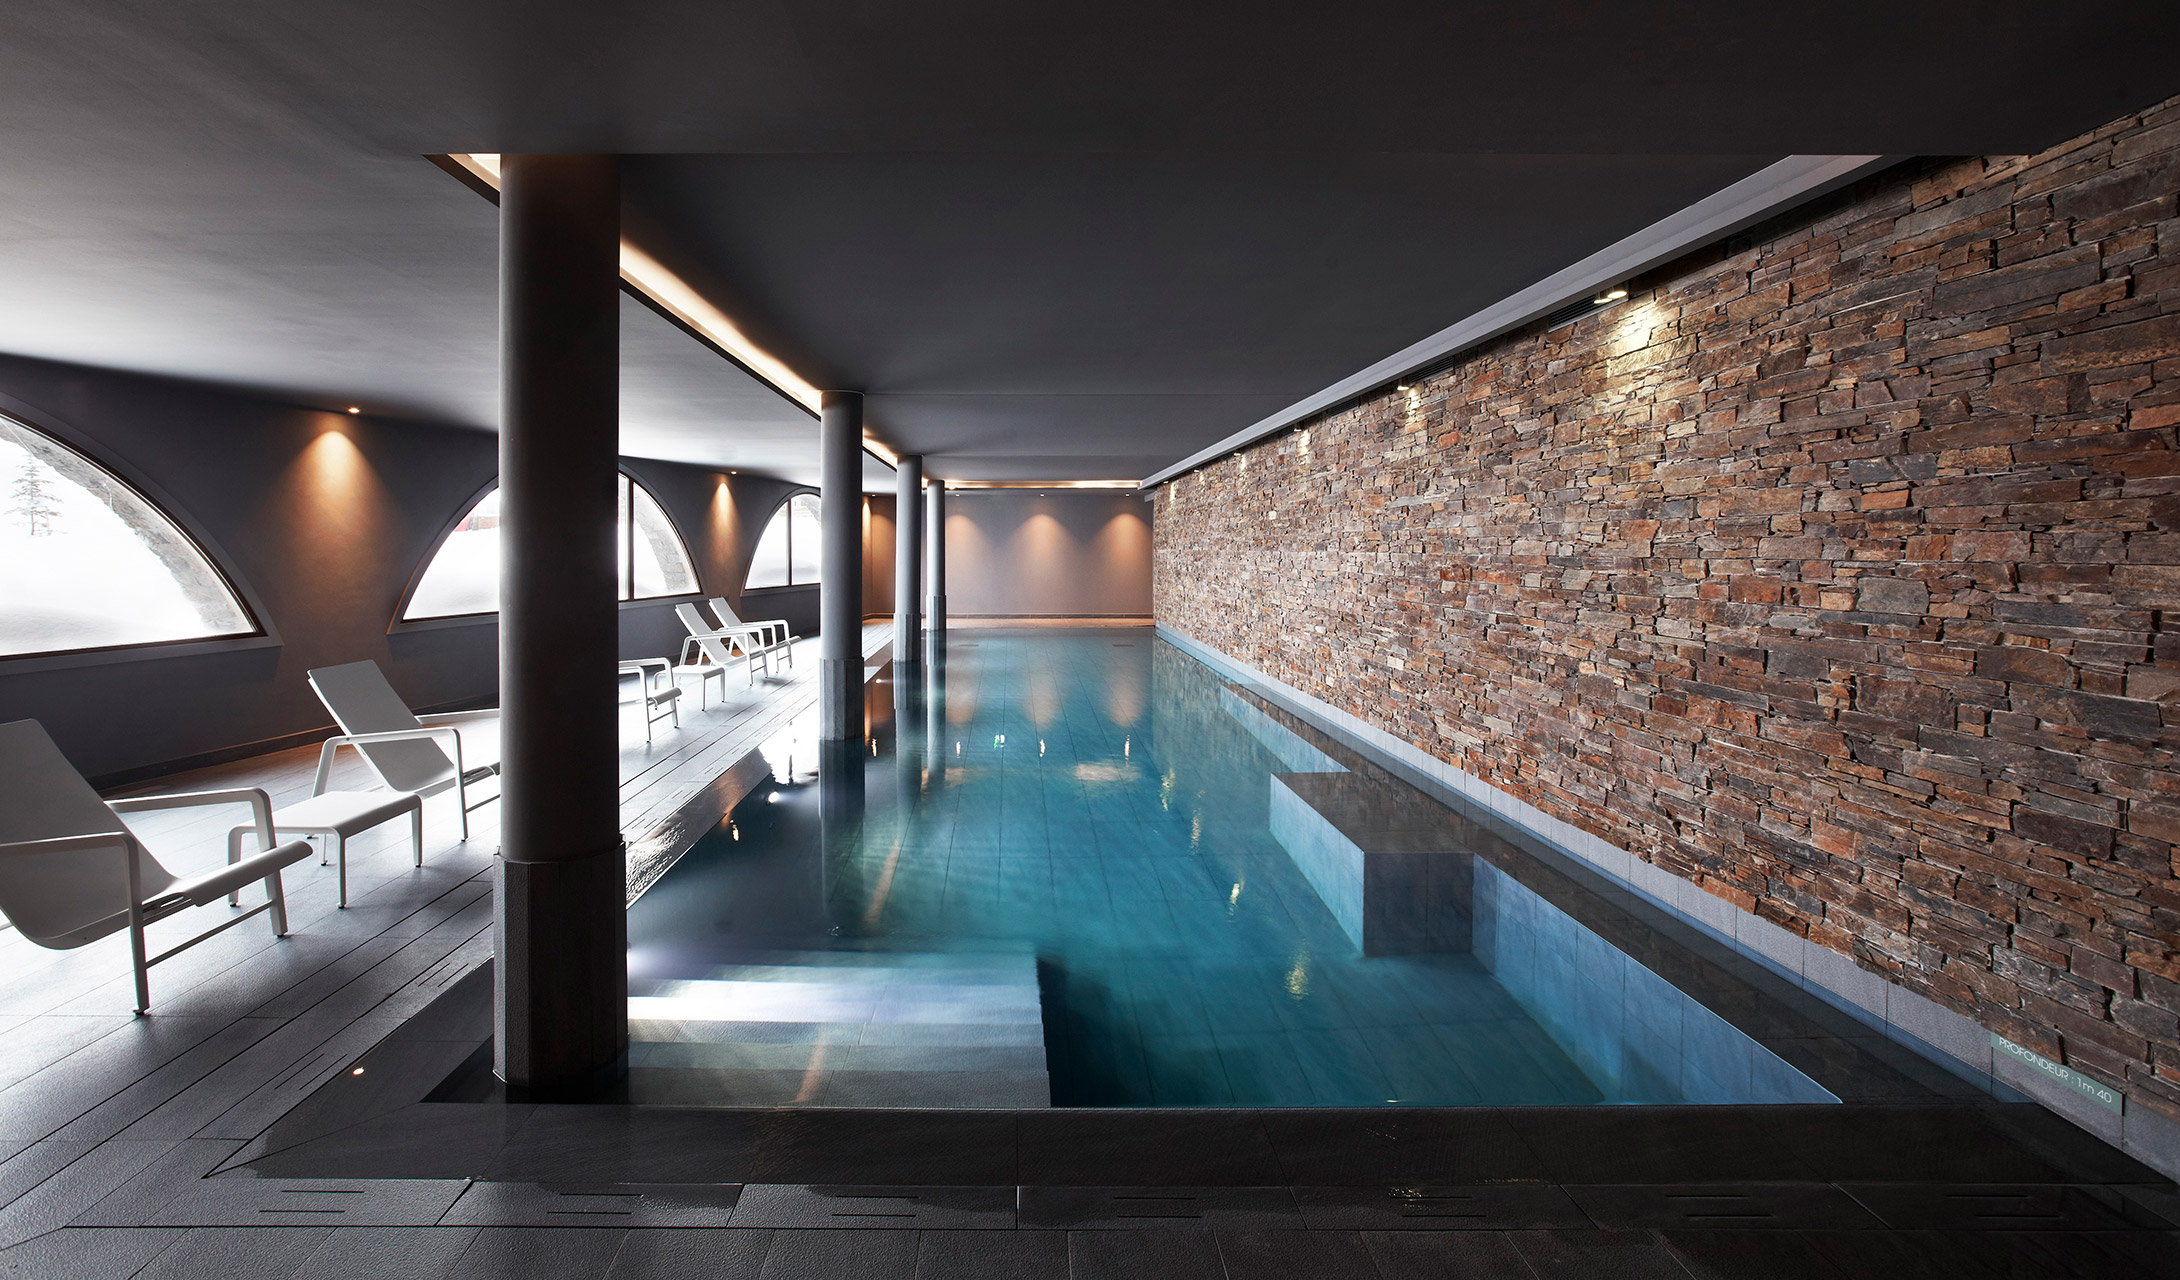 Le val thorens val thorens france design hotels for Design hotels south of france